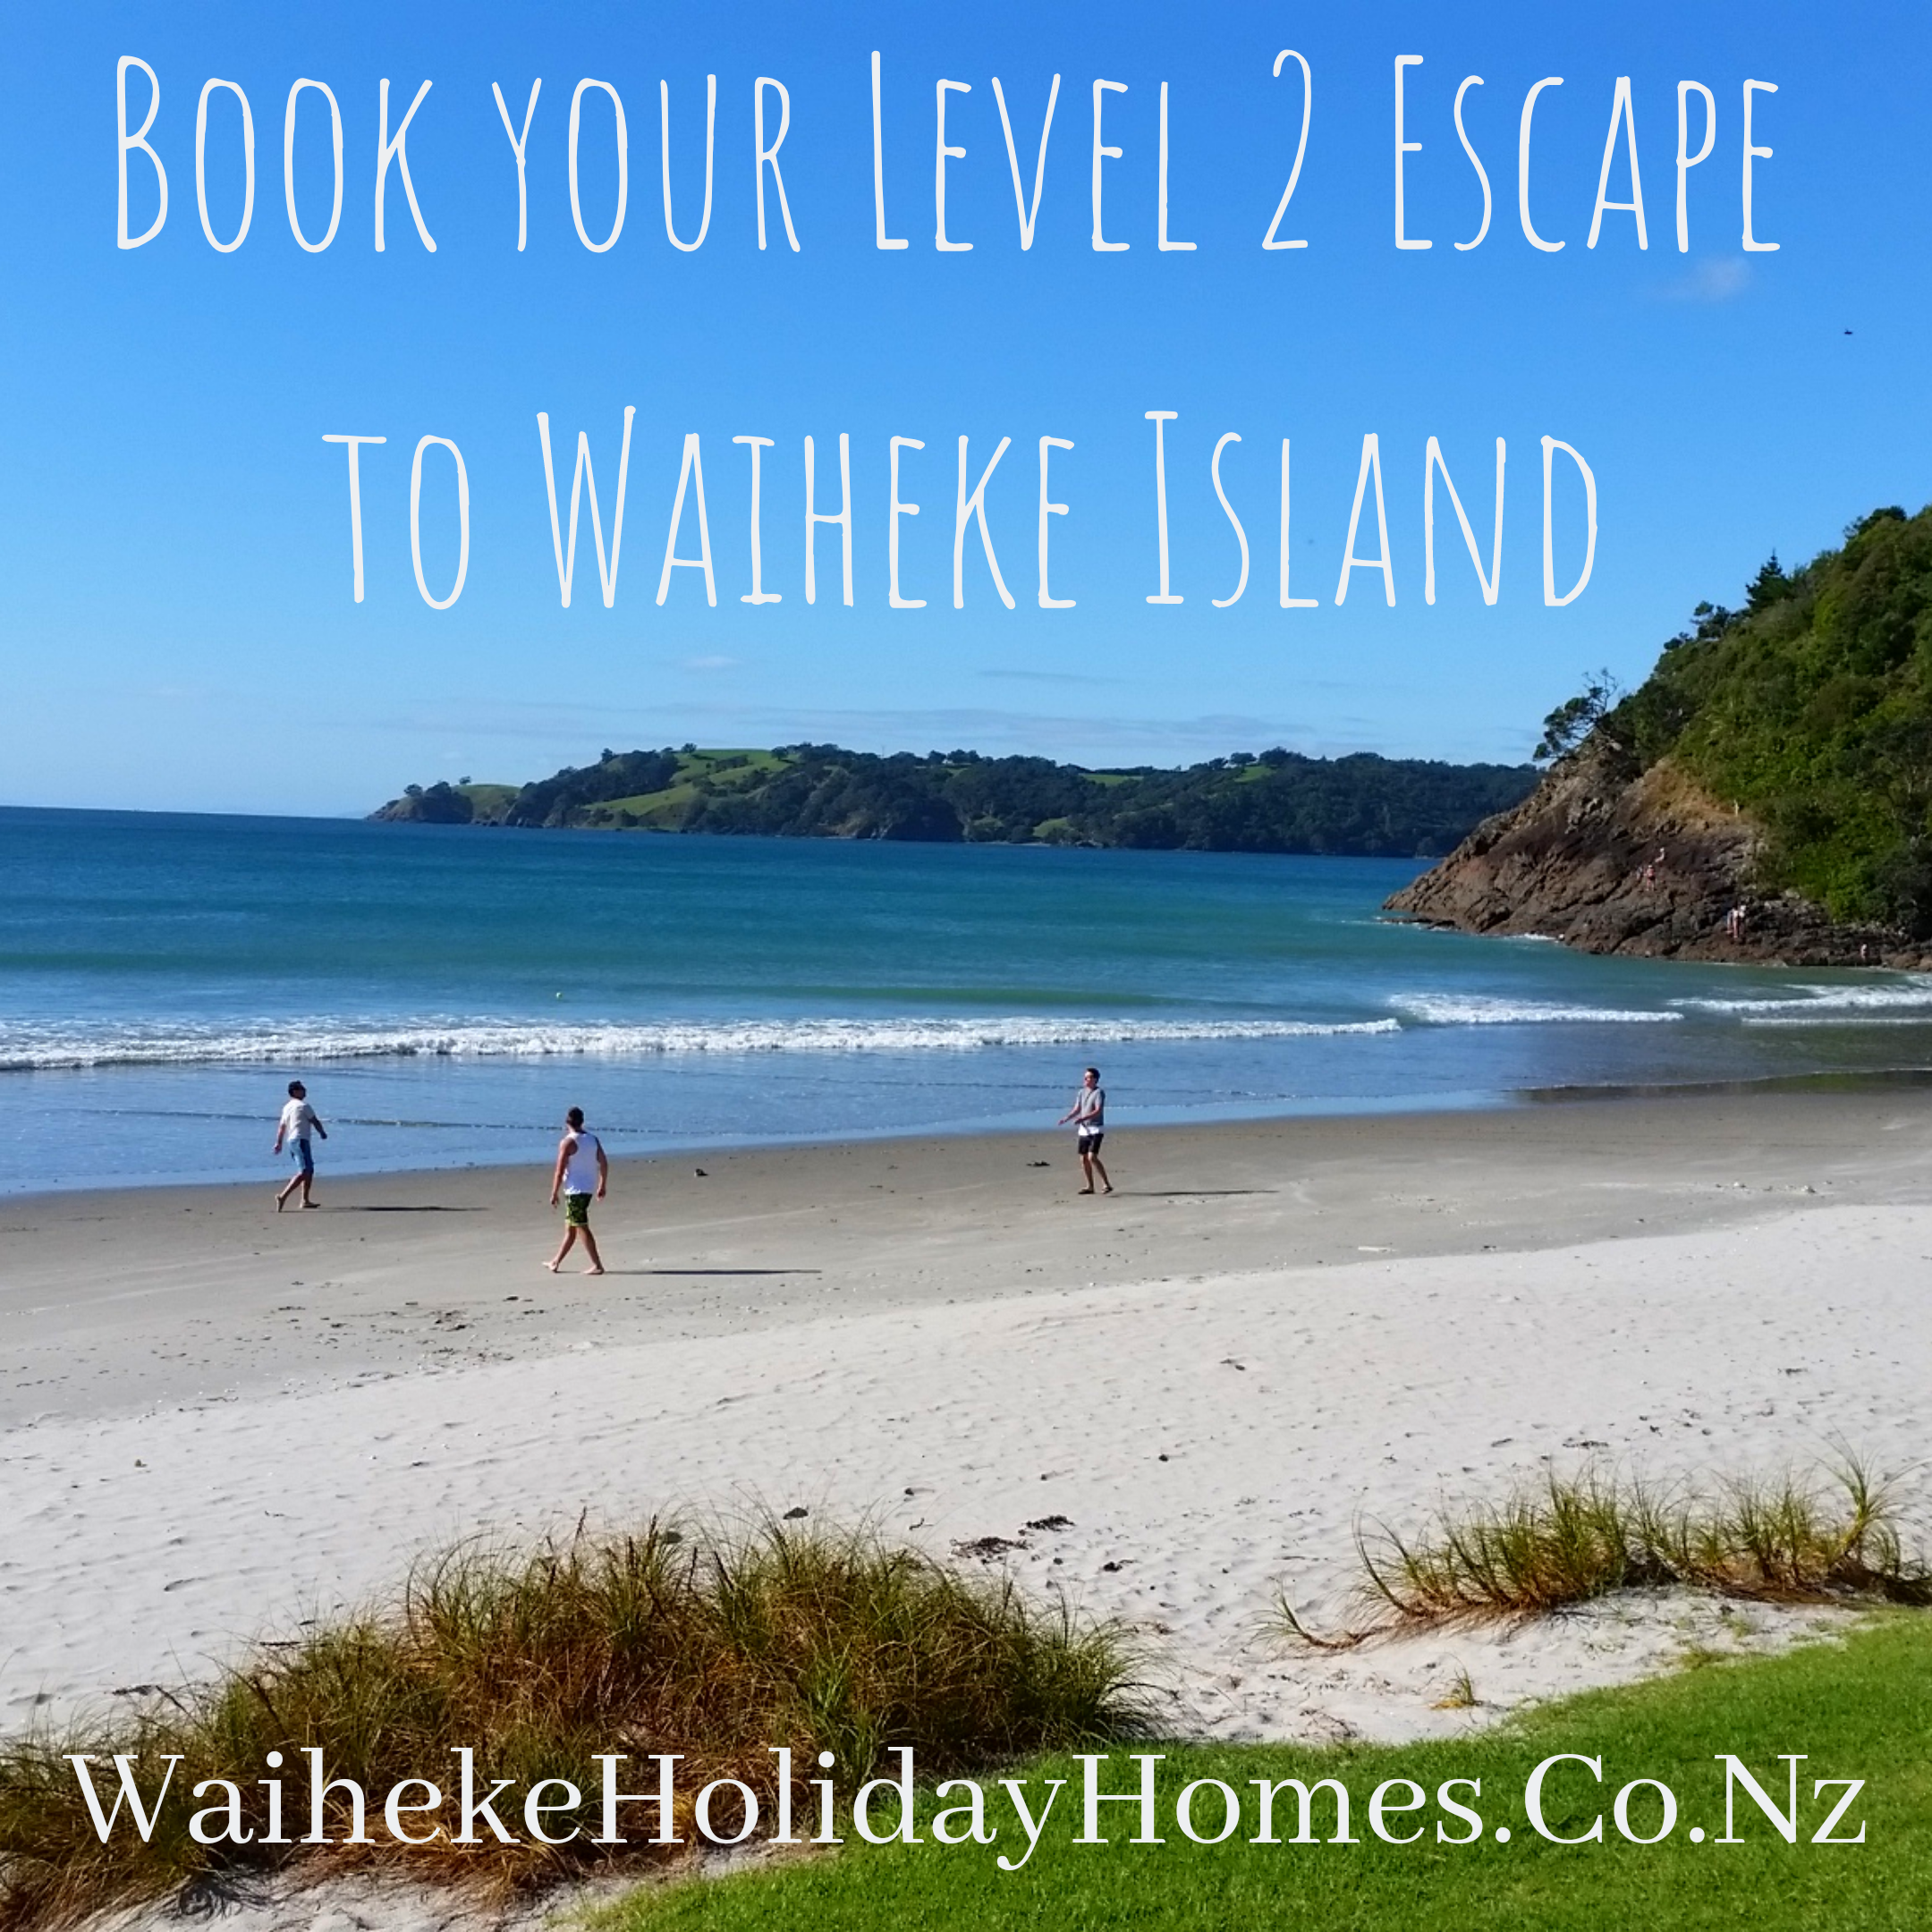 Book your Level 2 Escape to Waiheke Island now